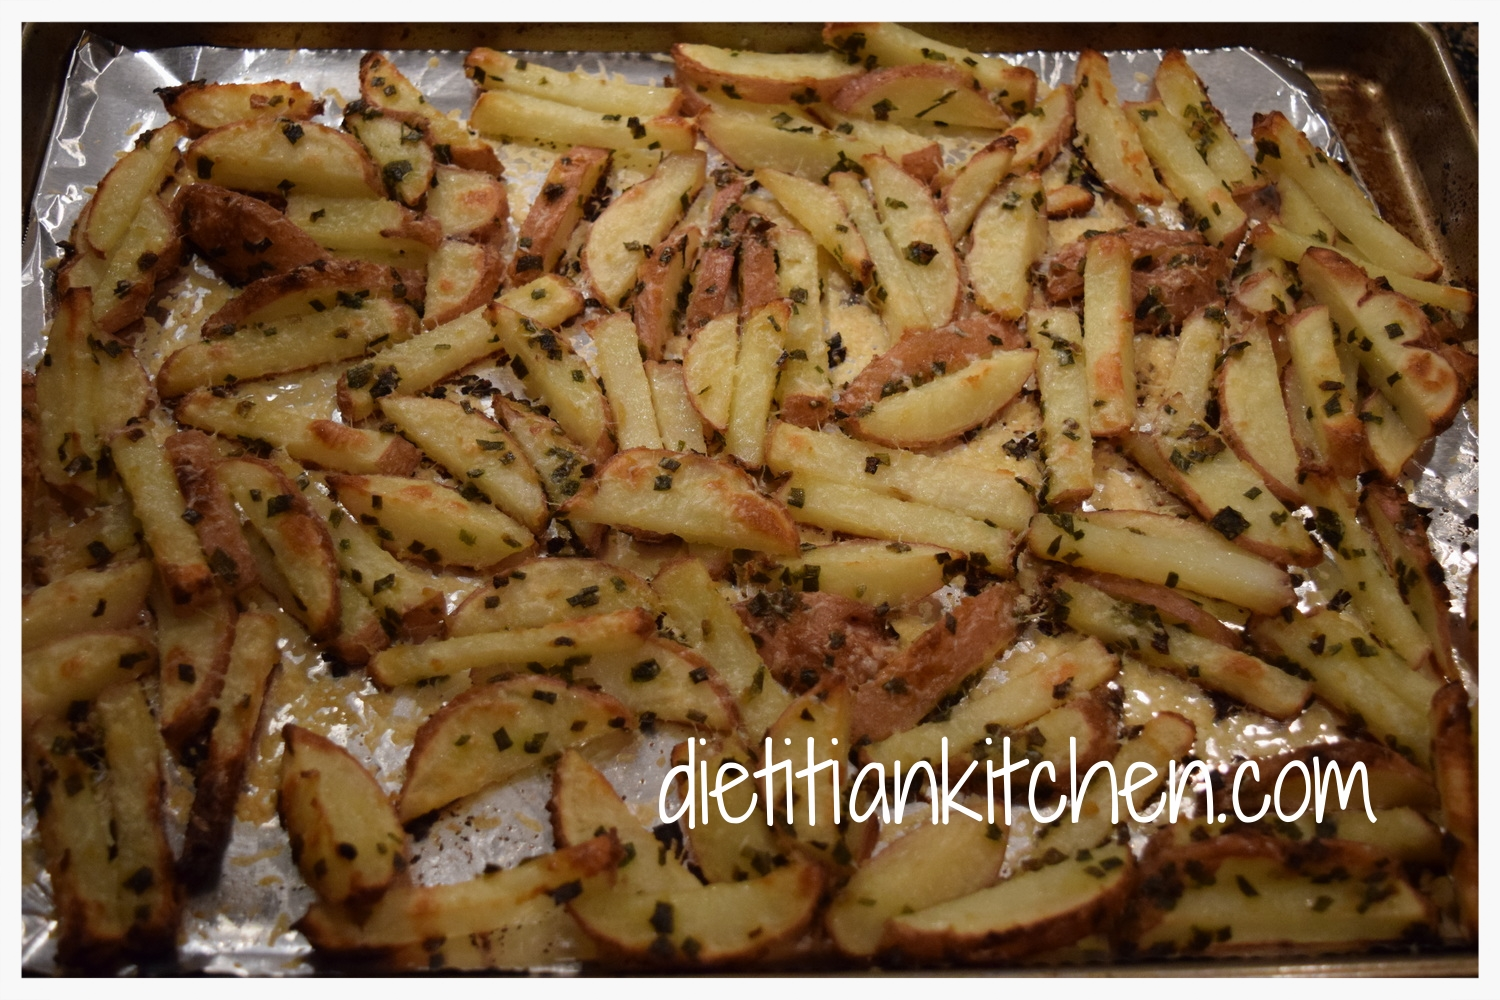 Chive & Parmesan Roasted Red Potatoes